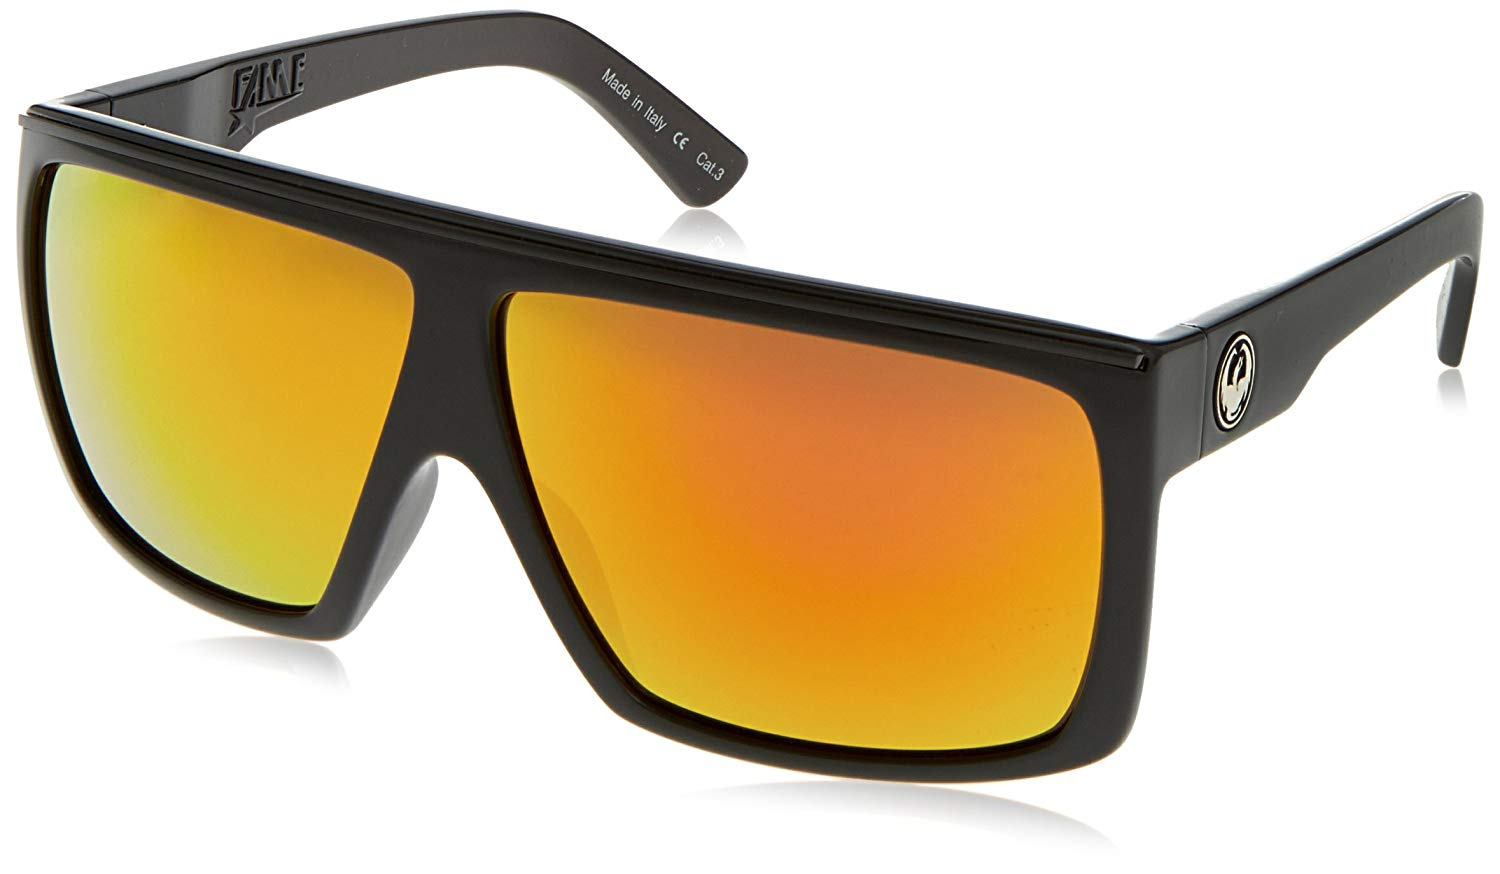 41175a1275 Get Quotations · Dragon Fame Sunglasses